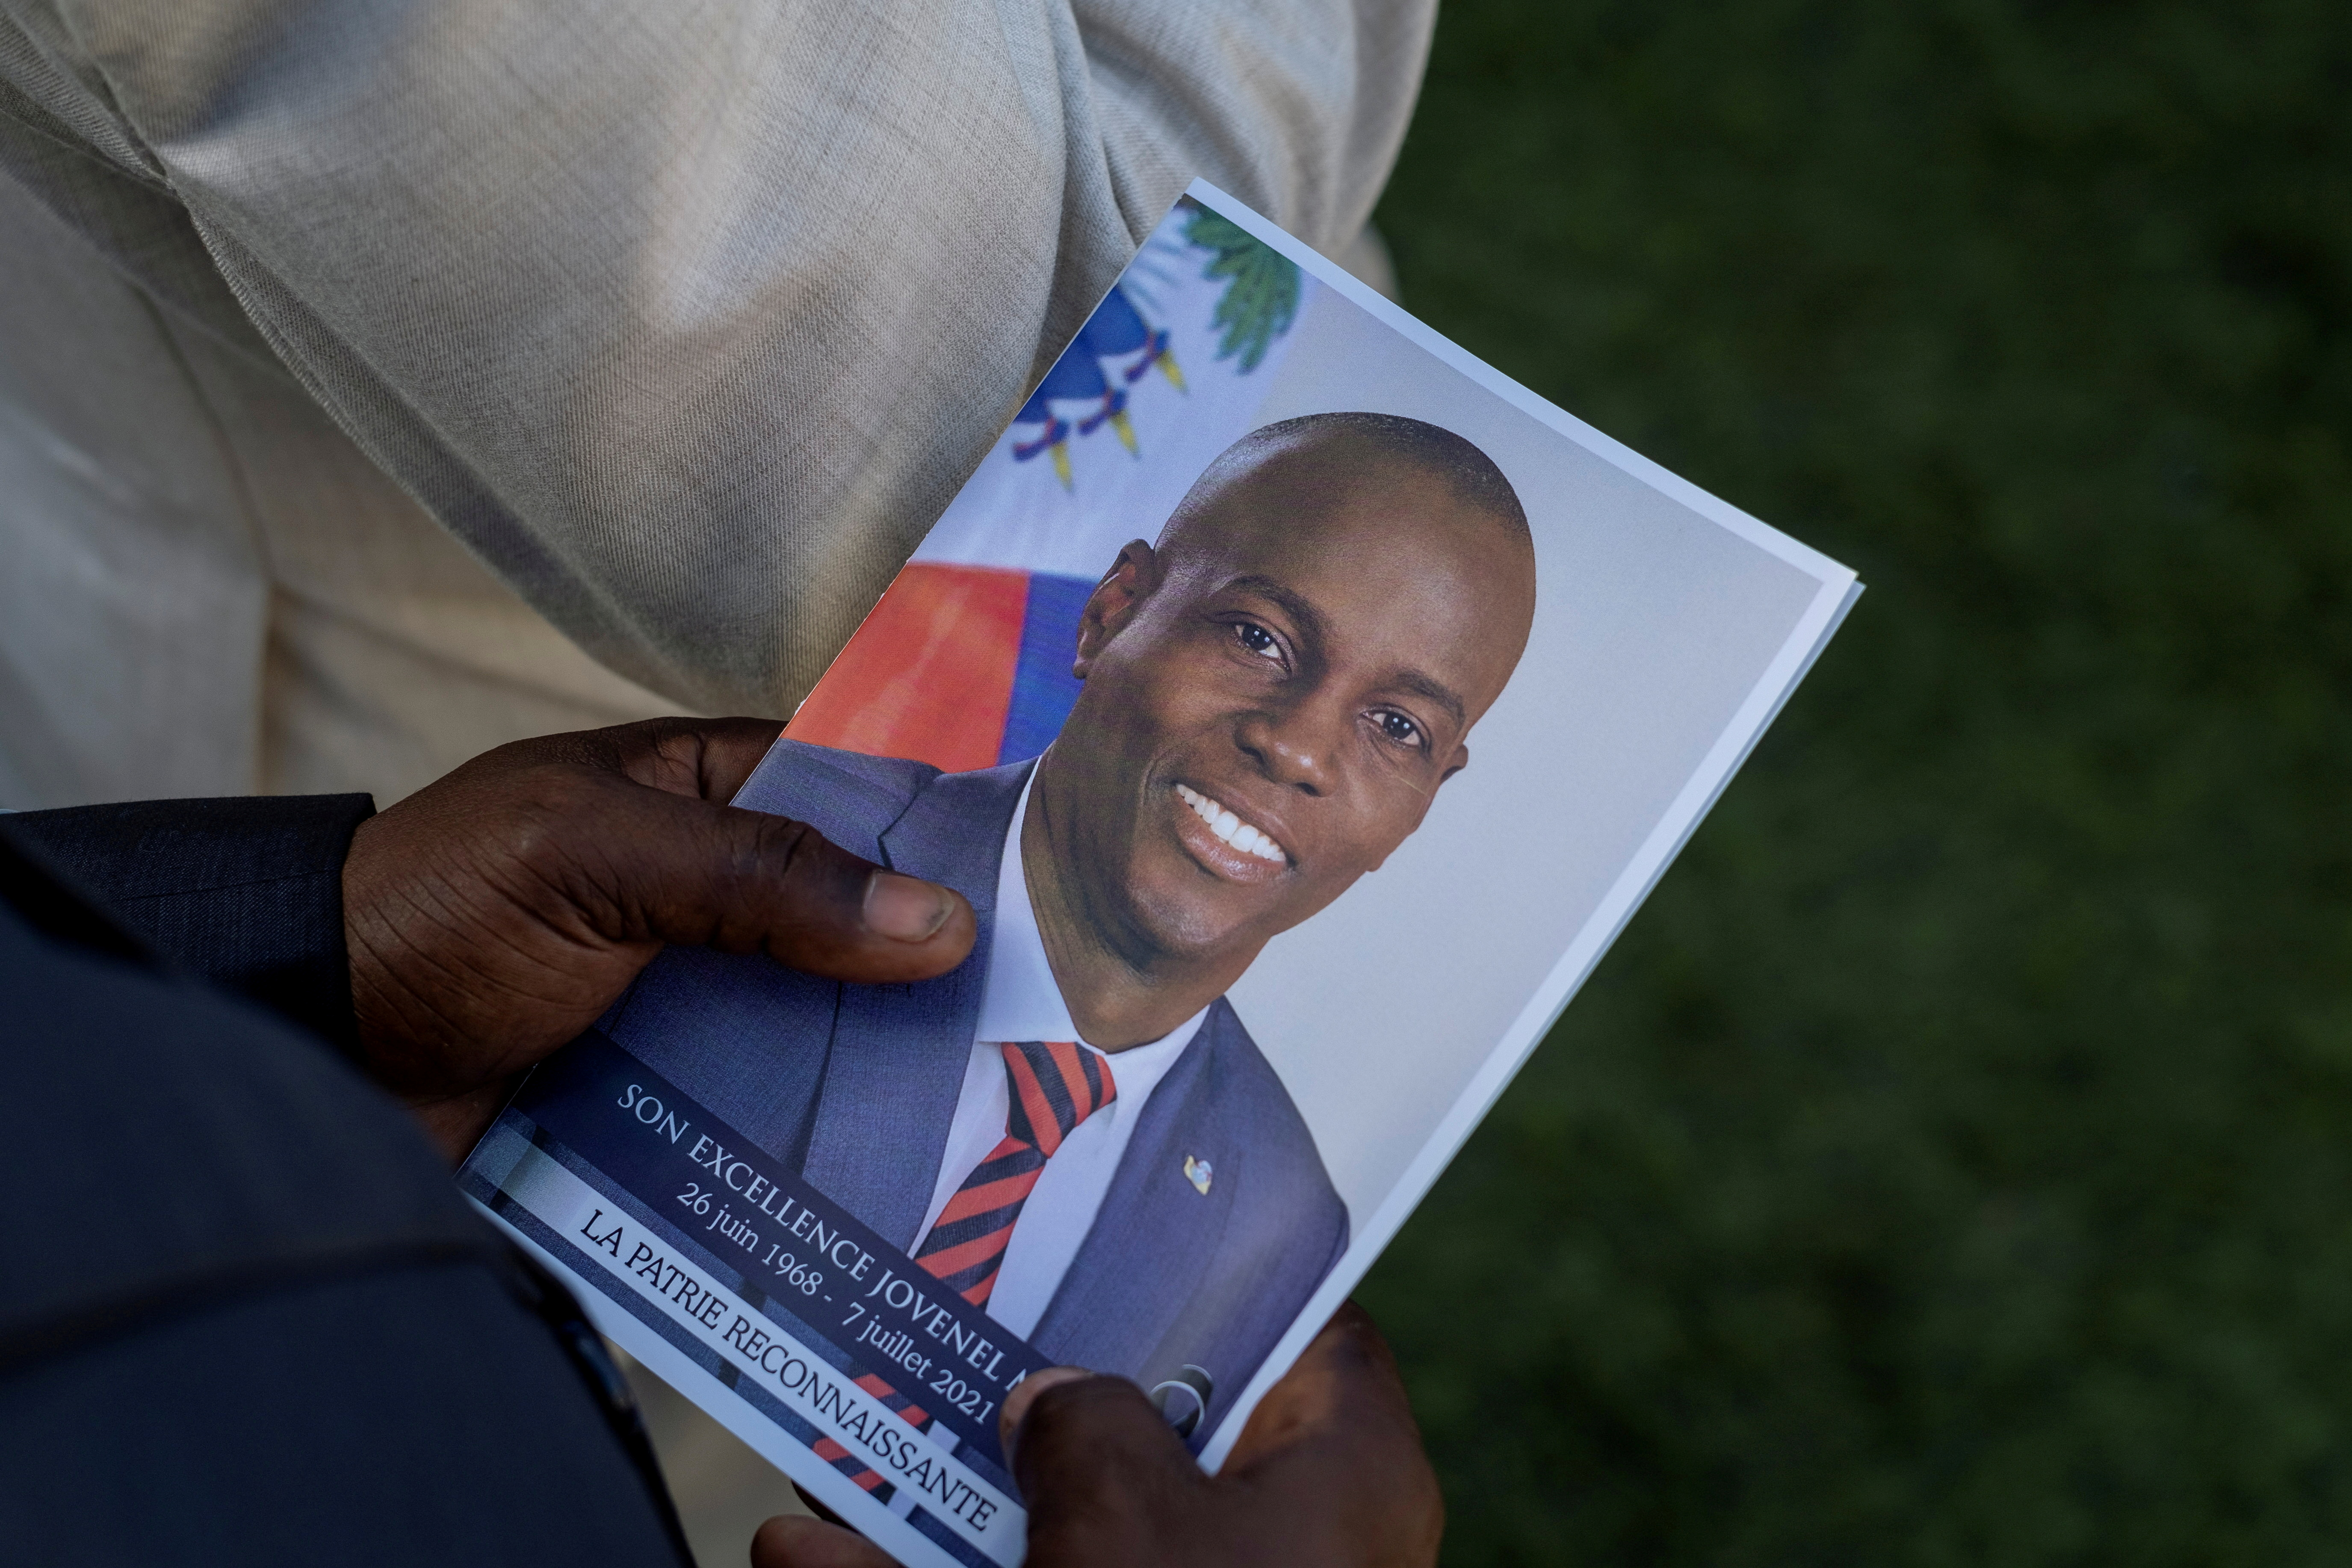 A person holds a photo of late Haitian President Jovenel Moise, who was shot dead earlier this month, during his funeral at his family home in Cap-Haitien, Haiti, July 23, 2021. REUTERS/Ricardo Arduengo/File Photo